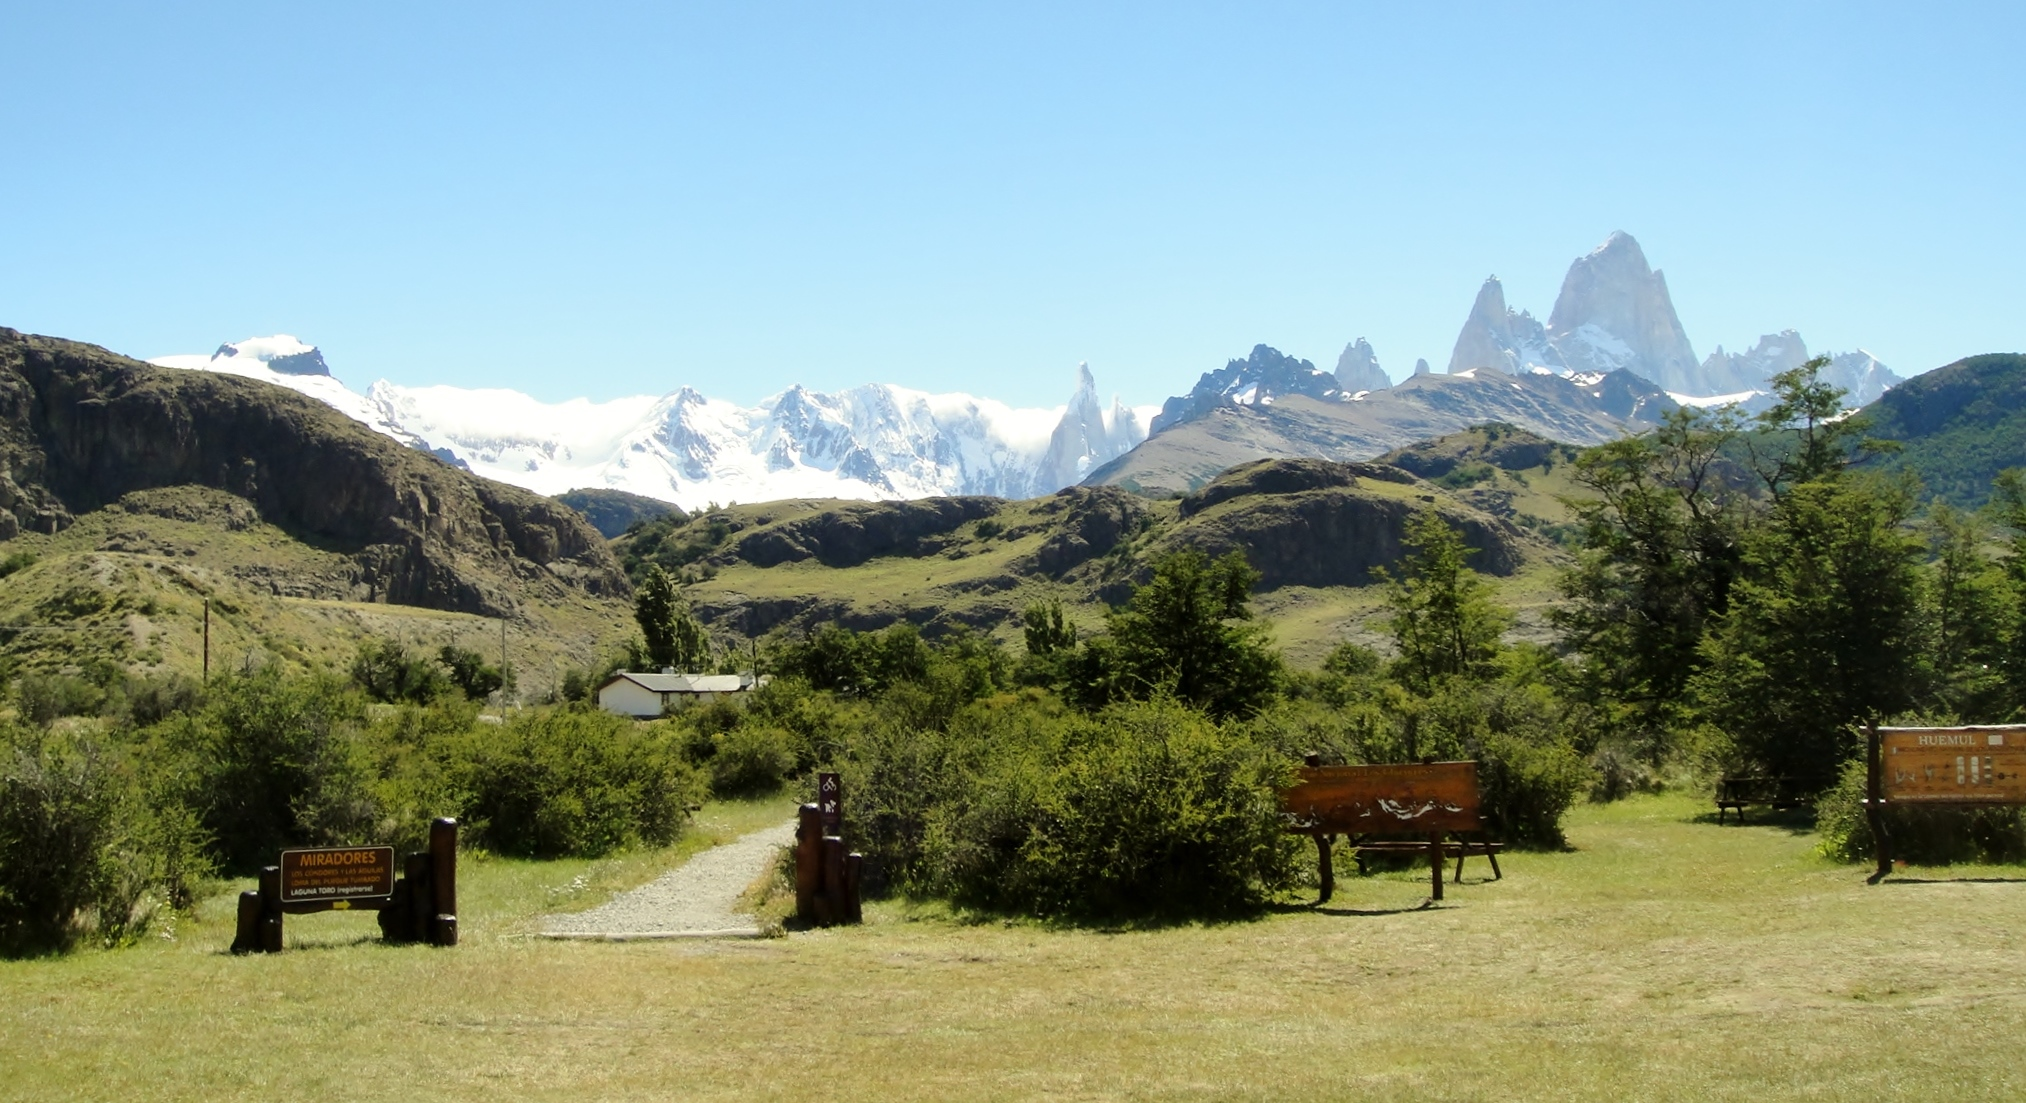 El Chalten – Hiking in Patagonia, Argentina